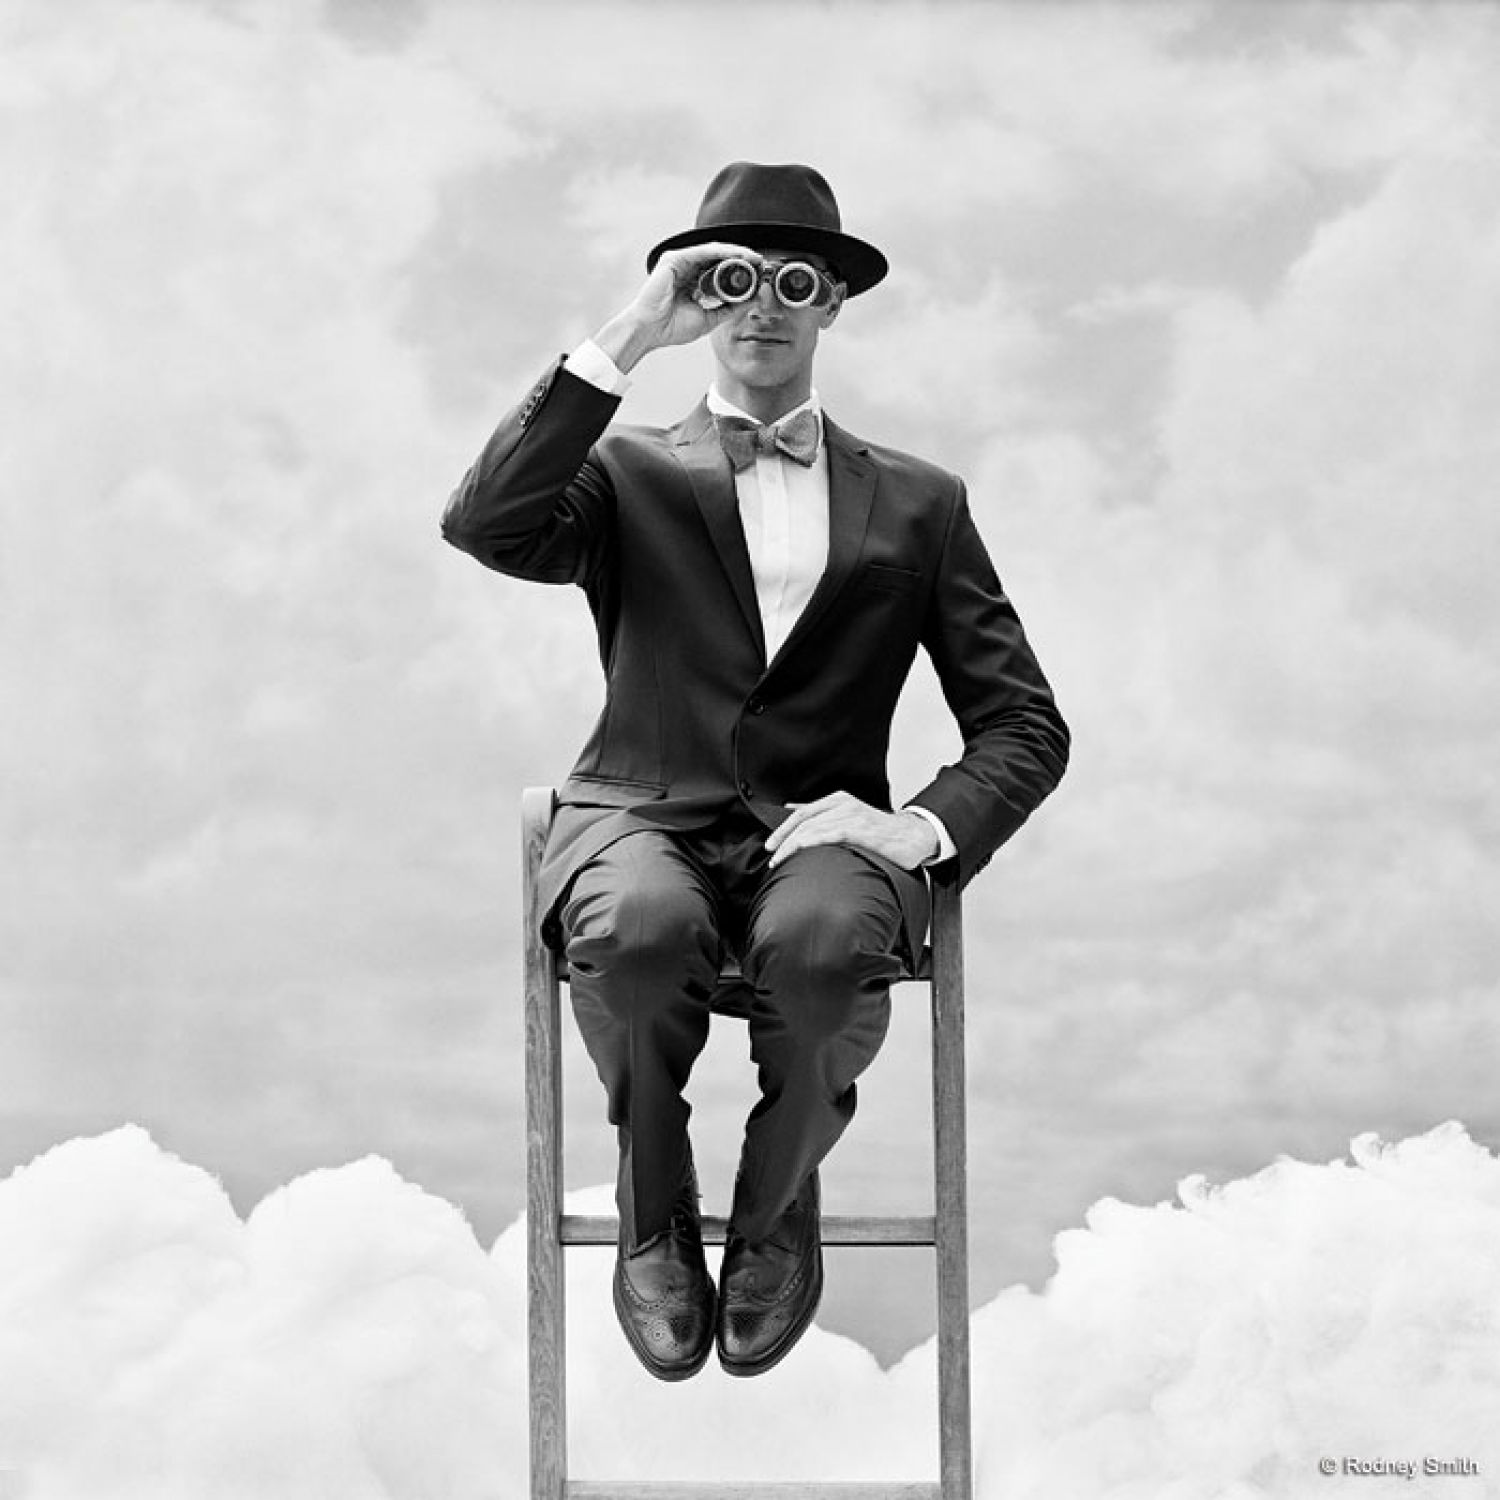 "As photography continues to evolve in the digital age, Rodney Smith shoots primarily with black-and-white film. He isn't a luddite nor does he reject technology. While some may feel limited by film, Smith enjoys the obstacles, finding that they push his creativity. A self-proclaimed classicalist, Smith's style is sophisticated, surreal and distinctly his own. His timeless photographs are relevant to modern culture without following trends. He shoots everything in-camera, such as the photograph on the opening spread, right, which became a Time Magazine cover. Smith built a physical backdrop with clouds made of cotton. ""There's not one bit of retouching. That's the fun of it for me. I'm a photographer, not an illustrator,"" he says."